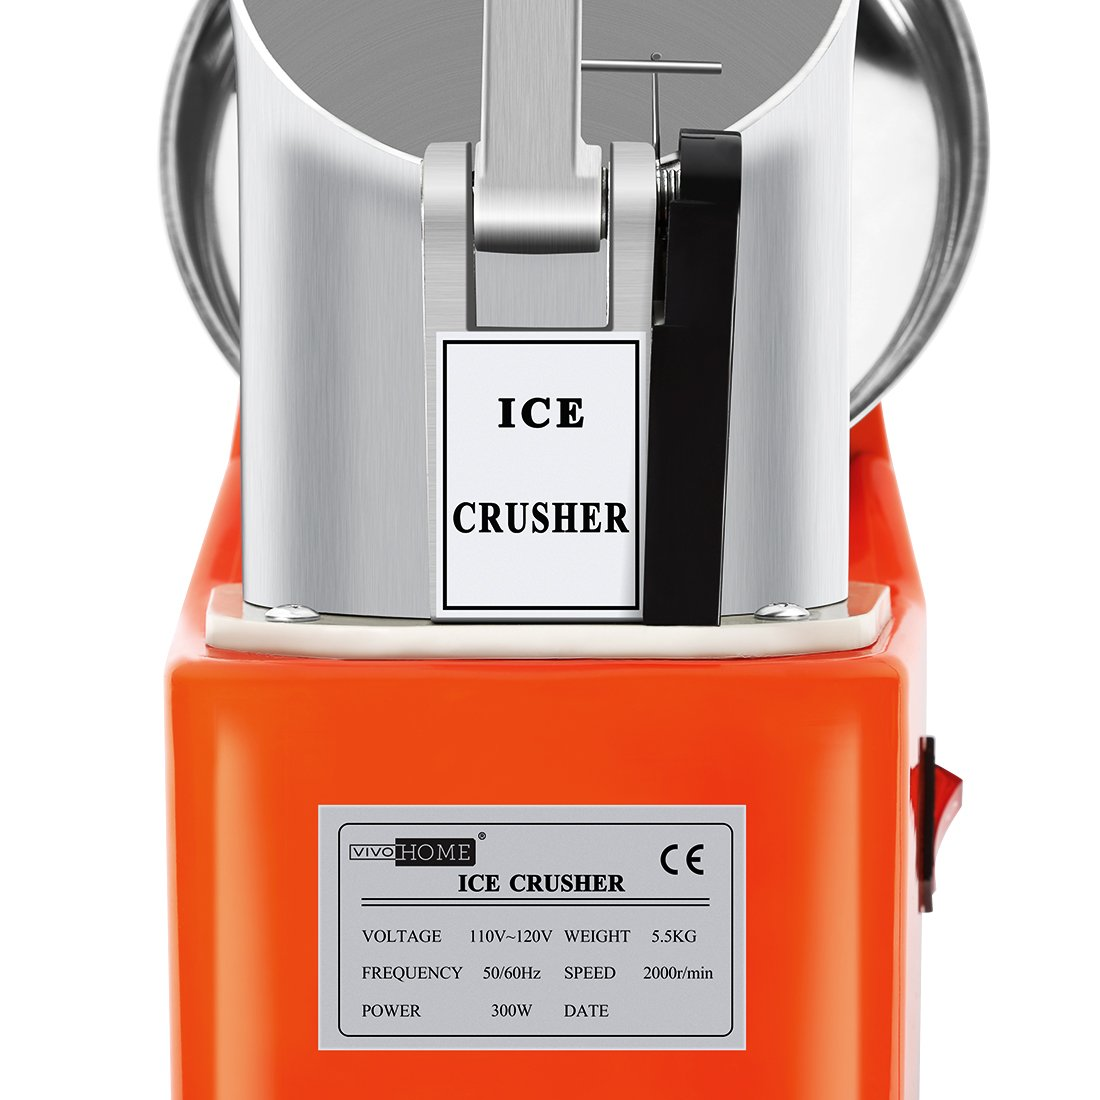 VIVOHOME Electric Ice Crusher Shaver Snow Cone Maker Machine Orange 143lbs/hr for Home and Commerical Use by VIVOHOME (Image #2)